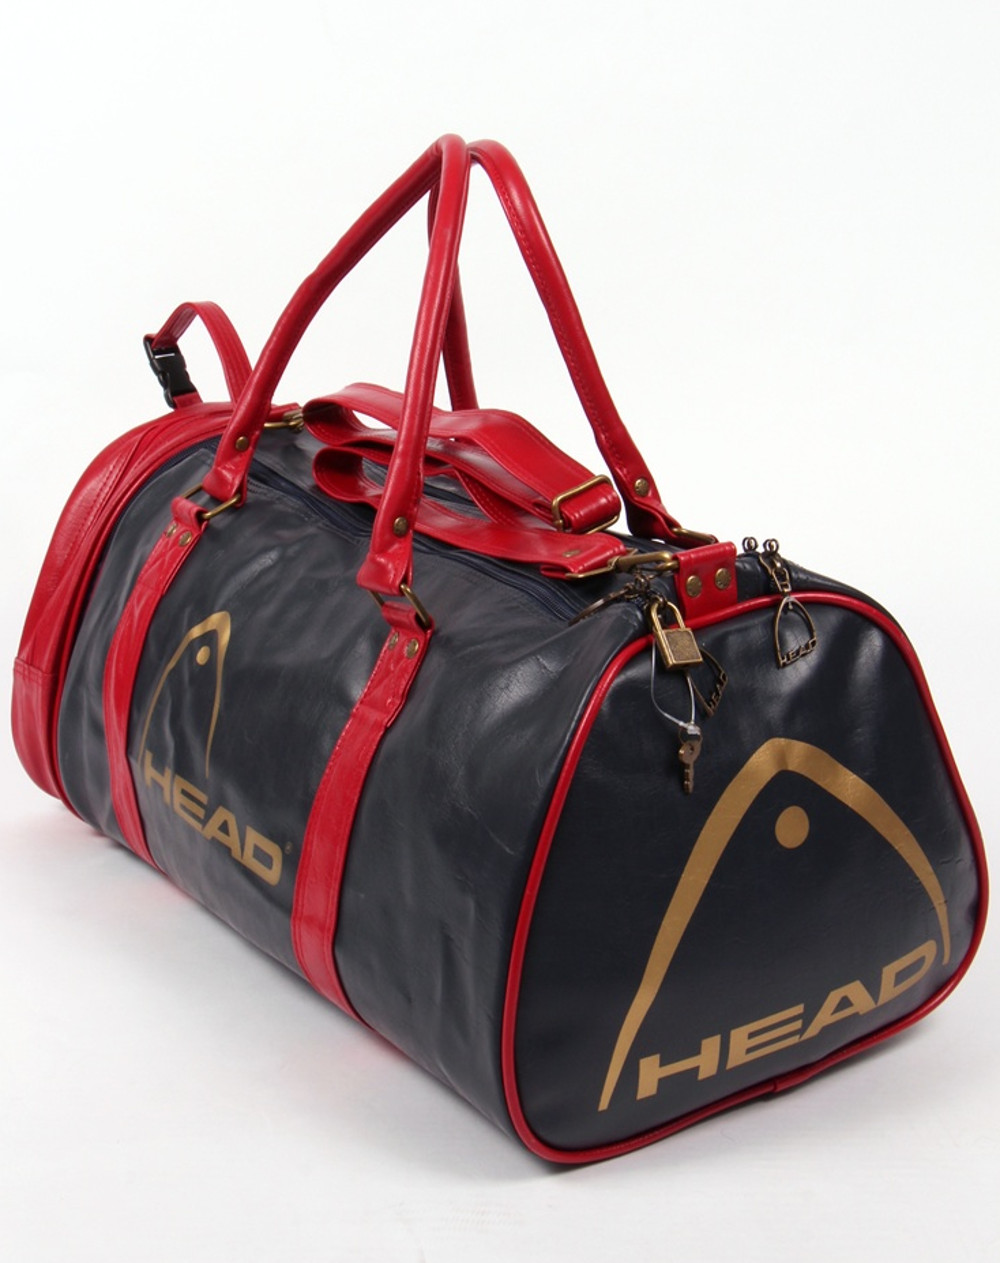 head Monte Carlo Holdall